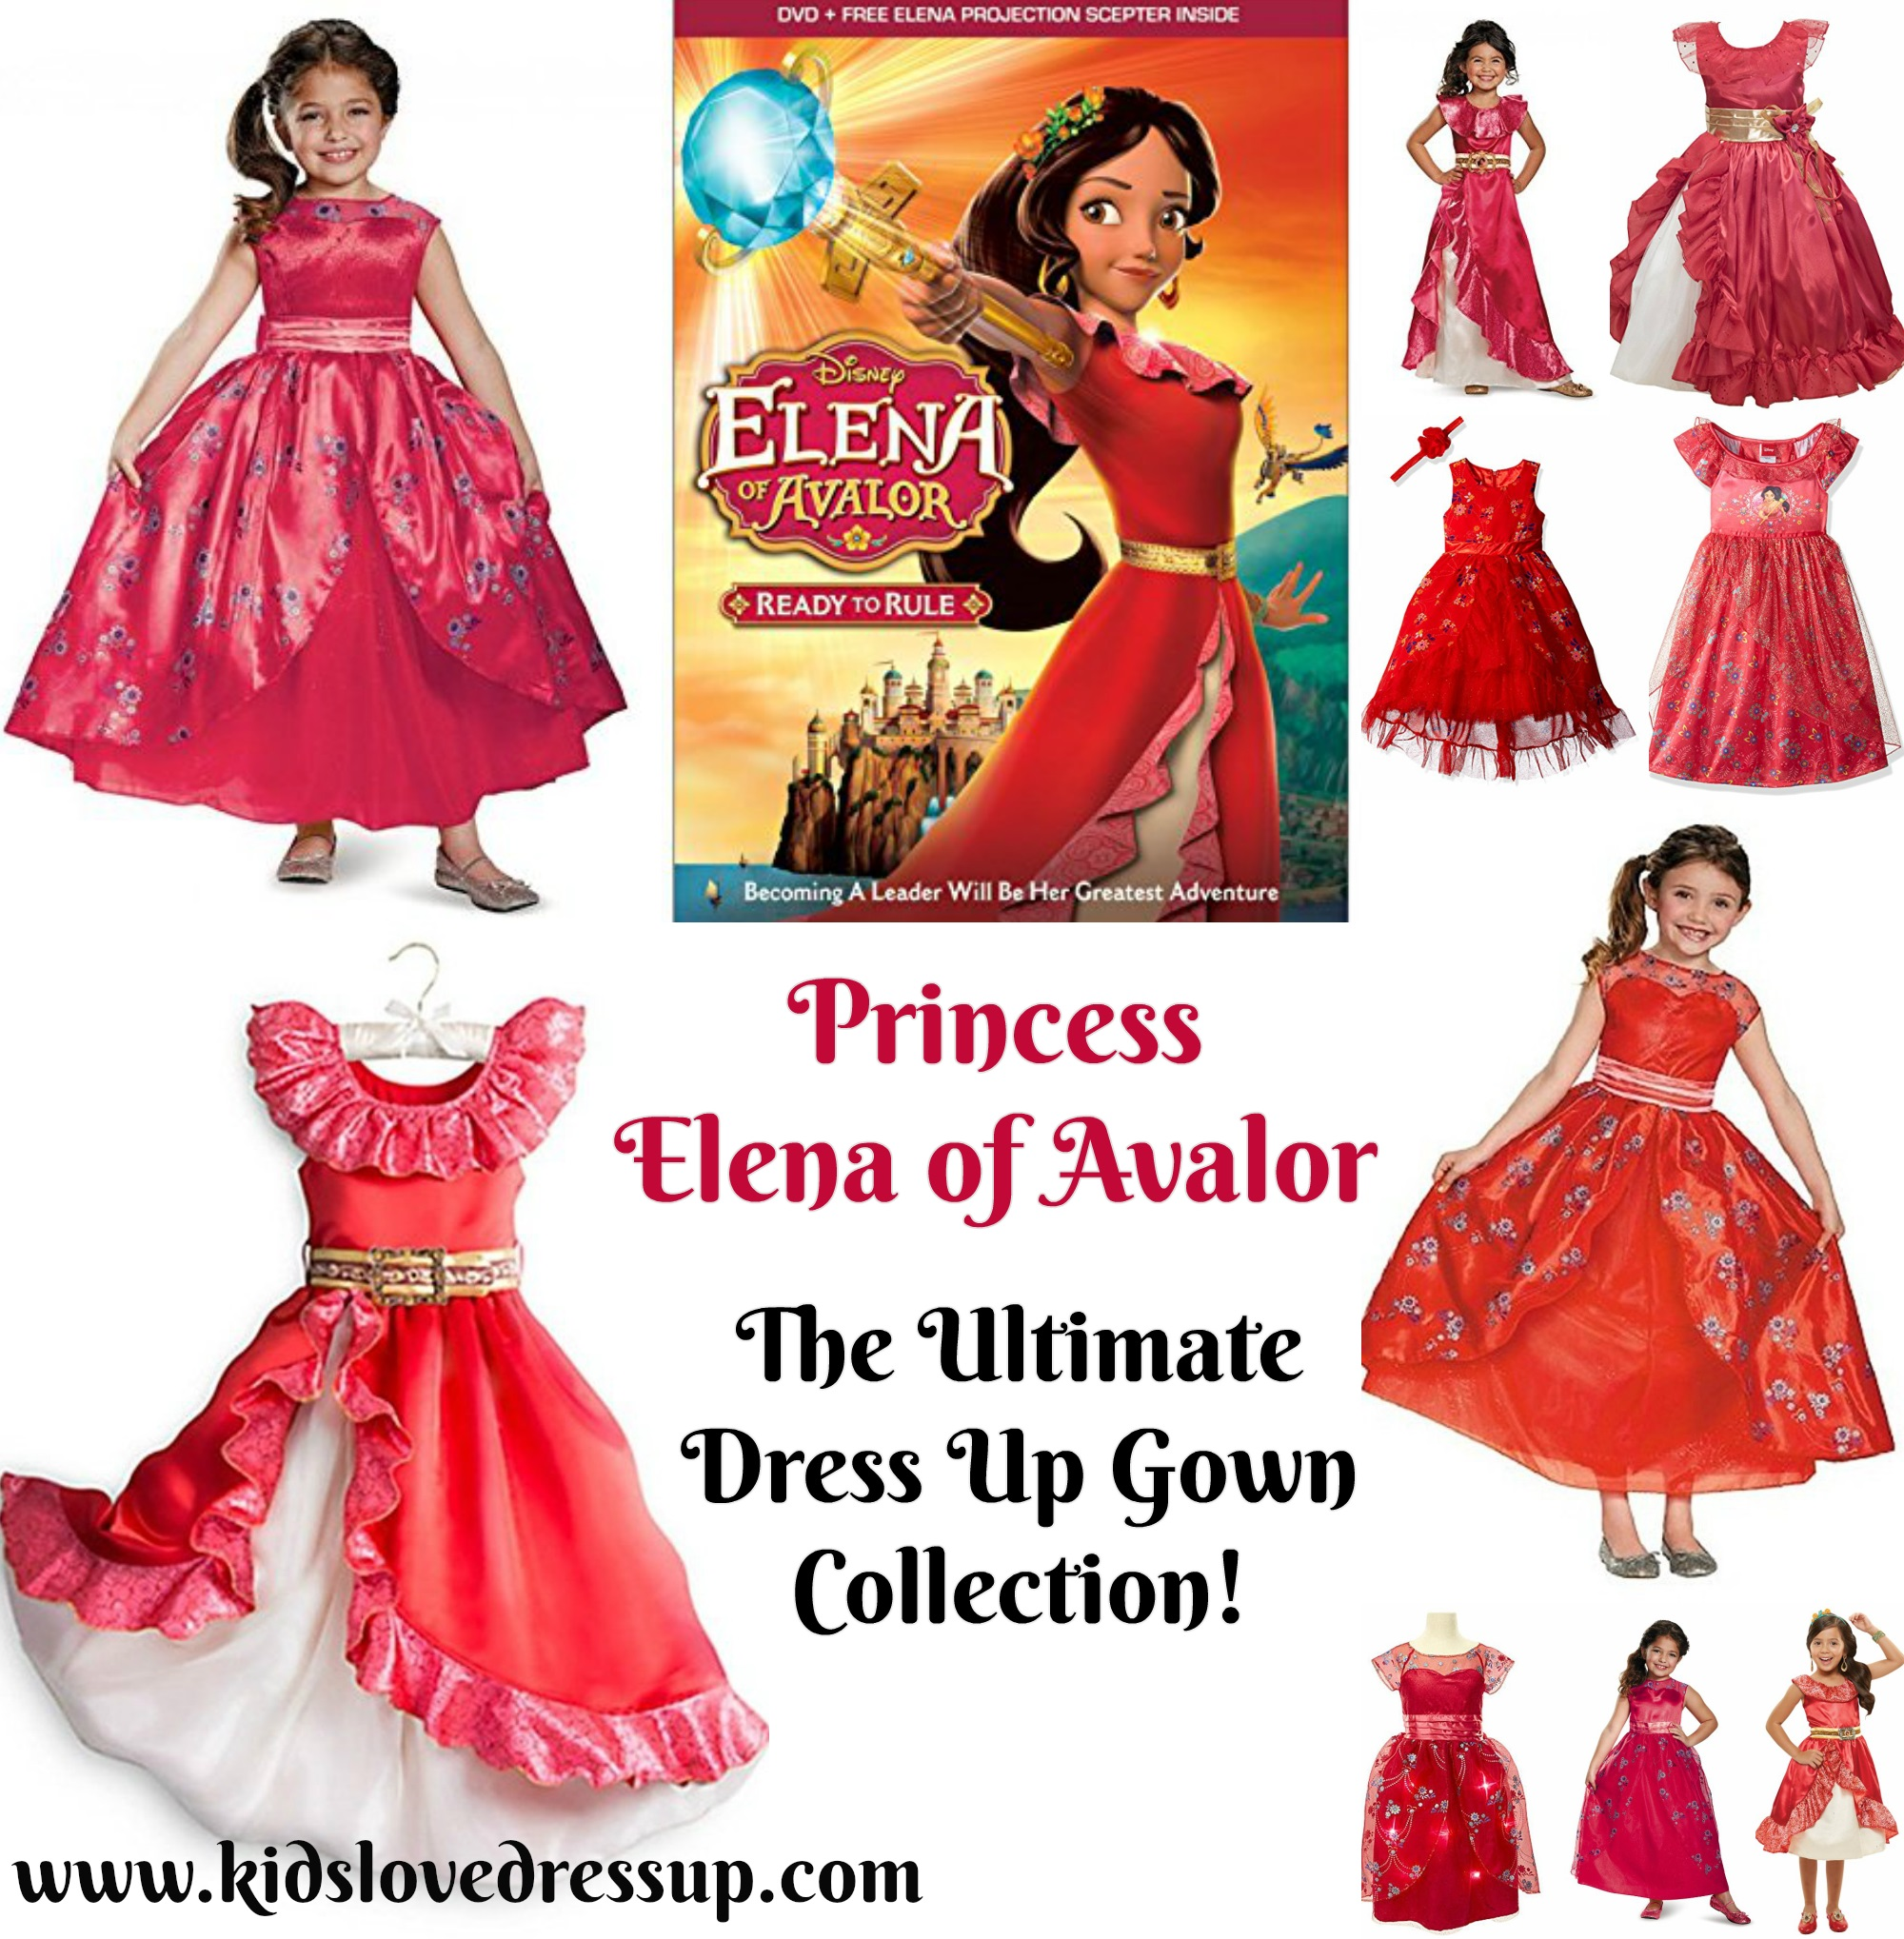 This is the Ultimate Elena of Avalor Costume Collection for little girls who want to dress up like the spunky and beautiful Princess Elena! SO HARD TO PICK JUST ONE! princess elena gowns, princess elena of avalor costumes, dress up elena of avalor, elena of avalor dress up, elena costumes, princess elena of avalor dress up gowns, Disney princess costume, Disney princesses, princess dress up, princess costumes, red princess, Spanish princess